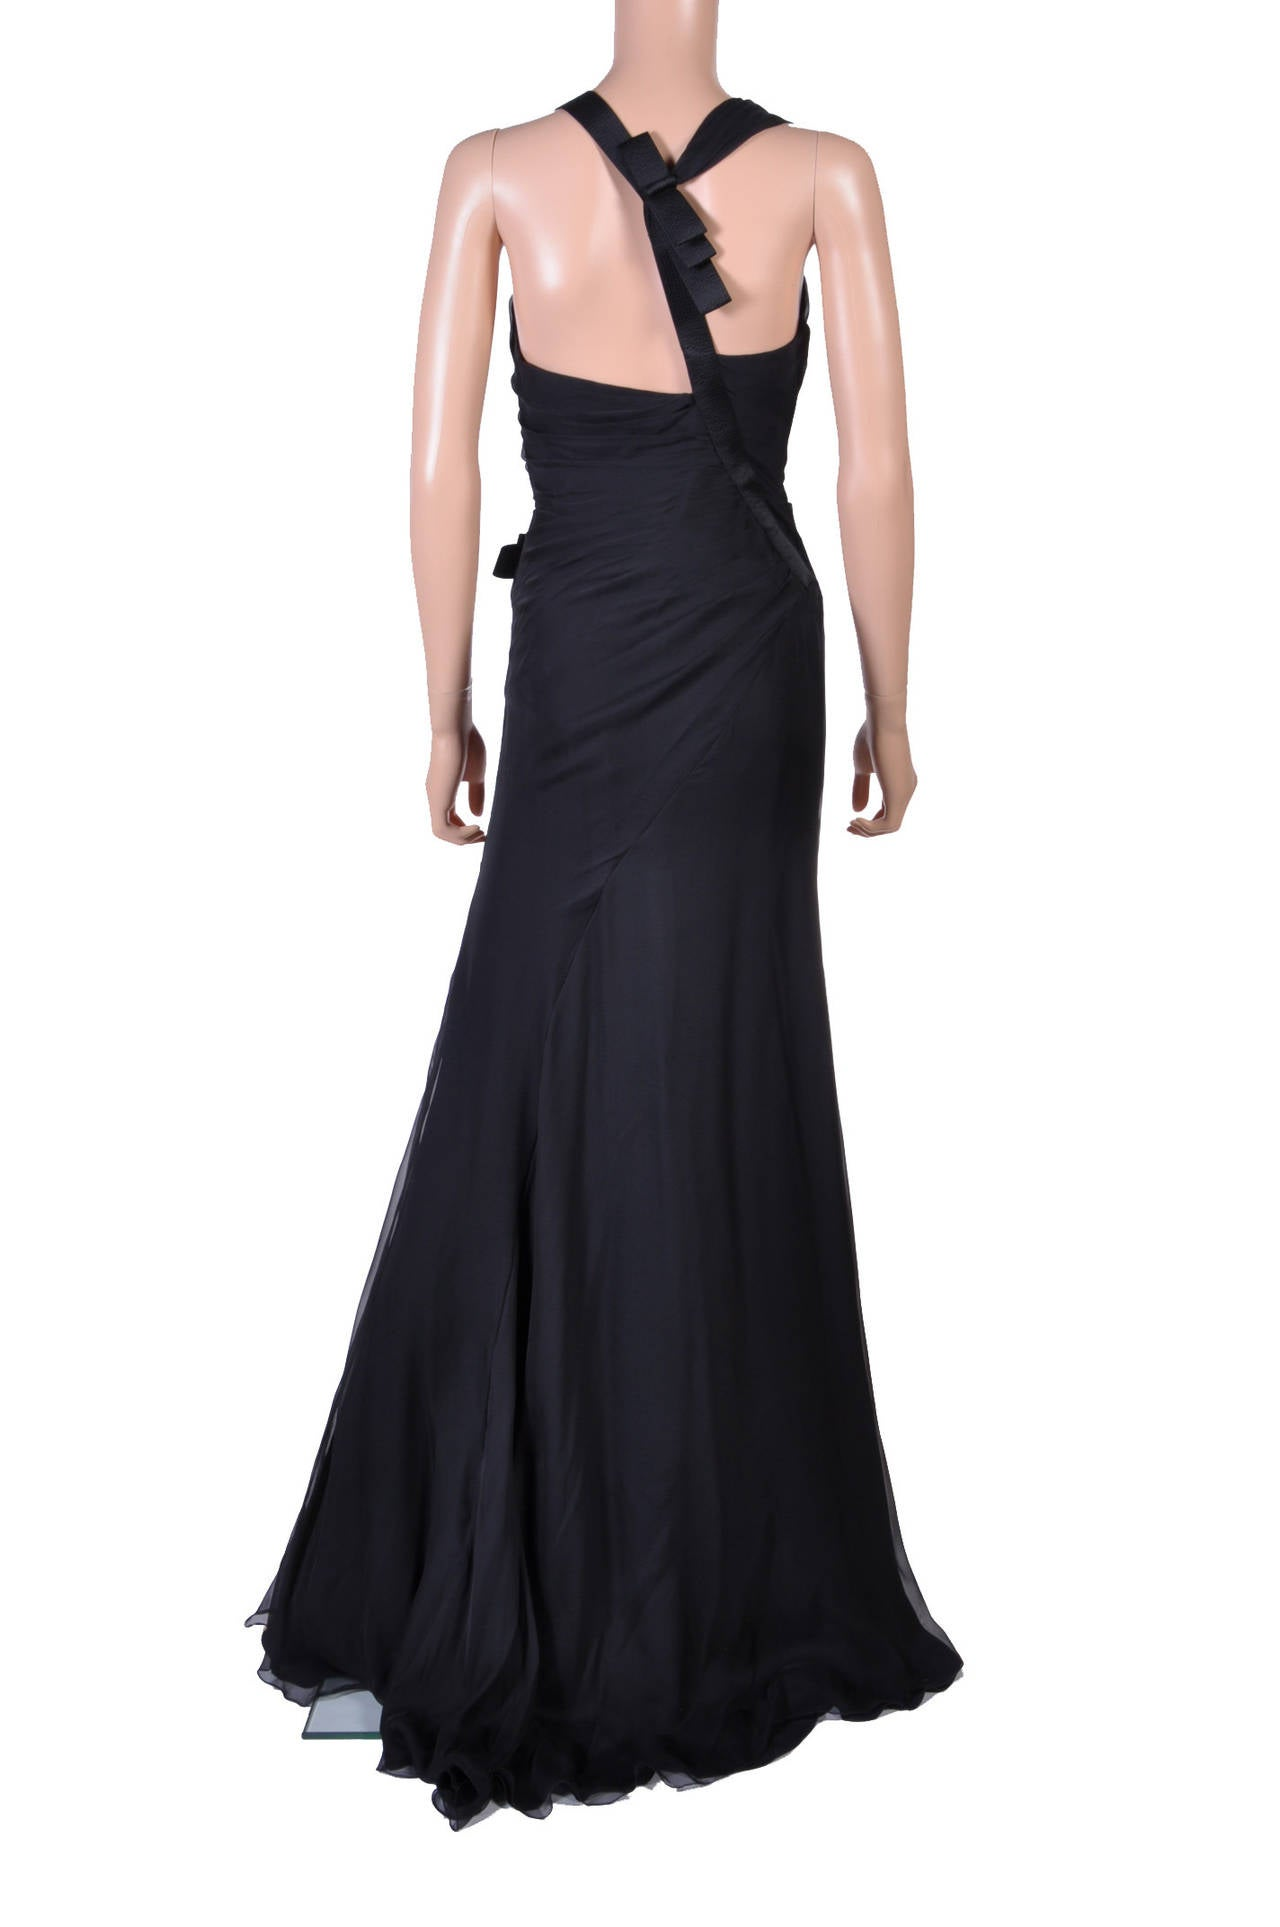 New VERSACE Black Chiffon Silk Gown For Sale 1